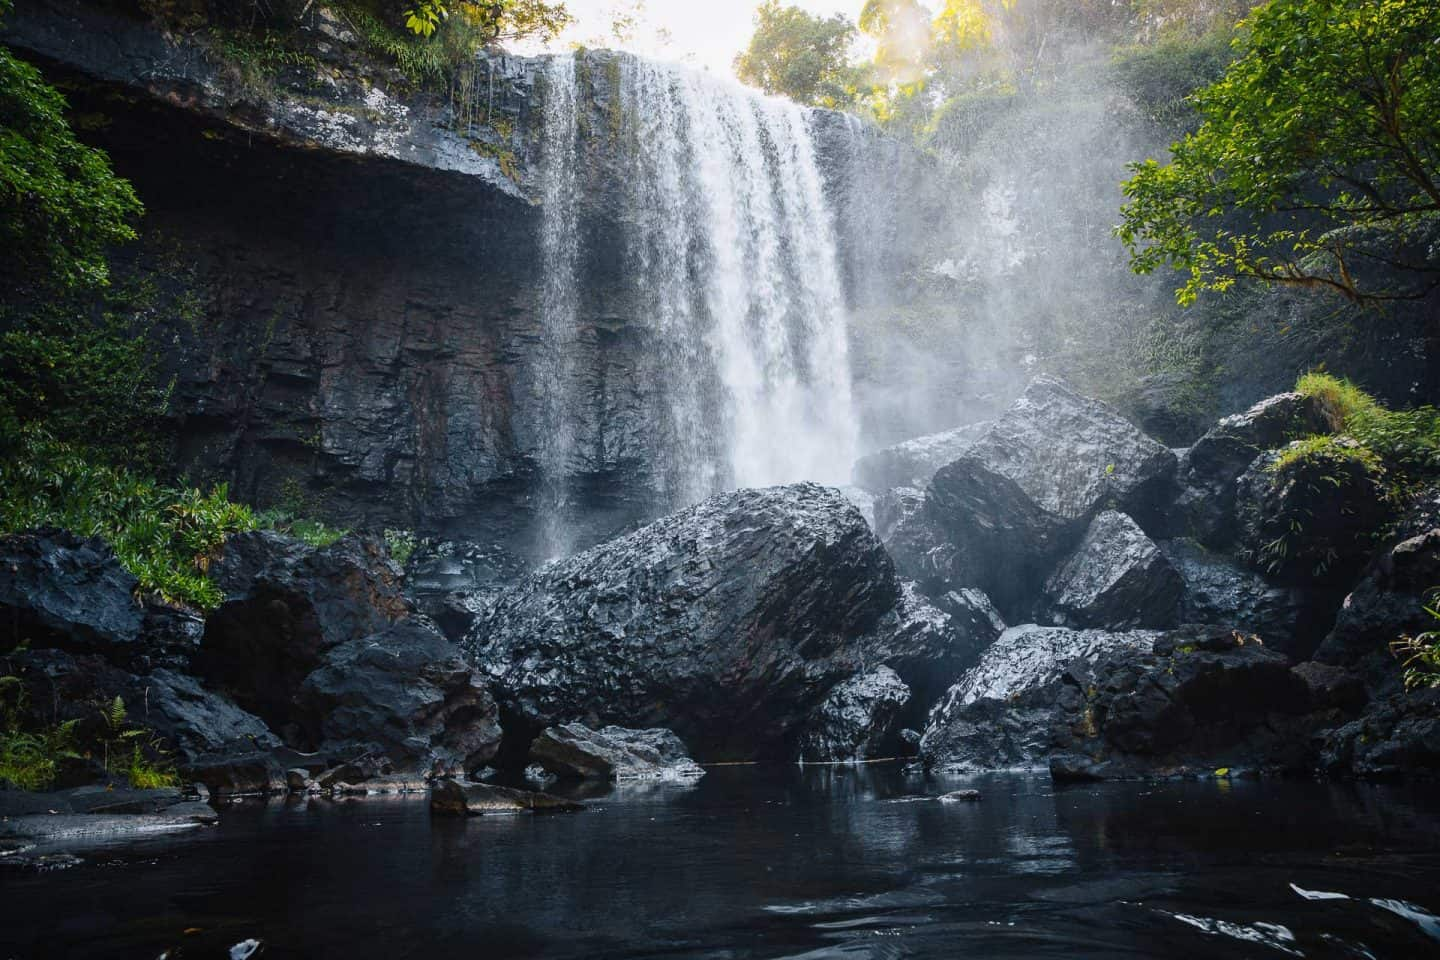 zillie falls, waterfall circuit cairns